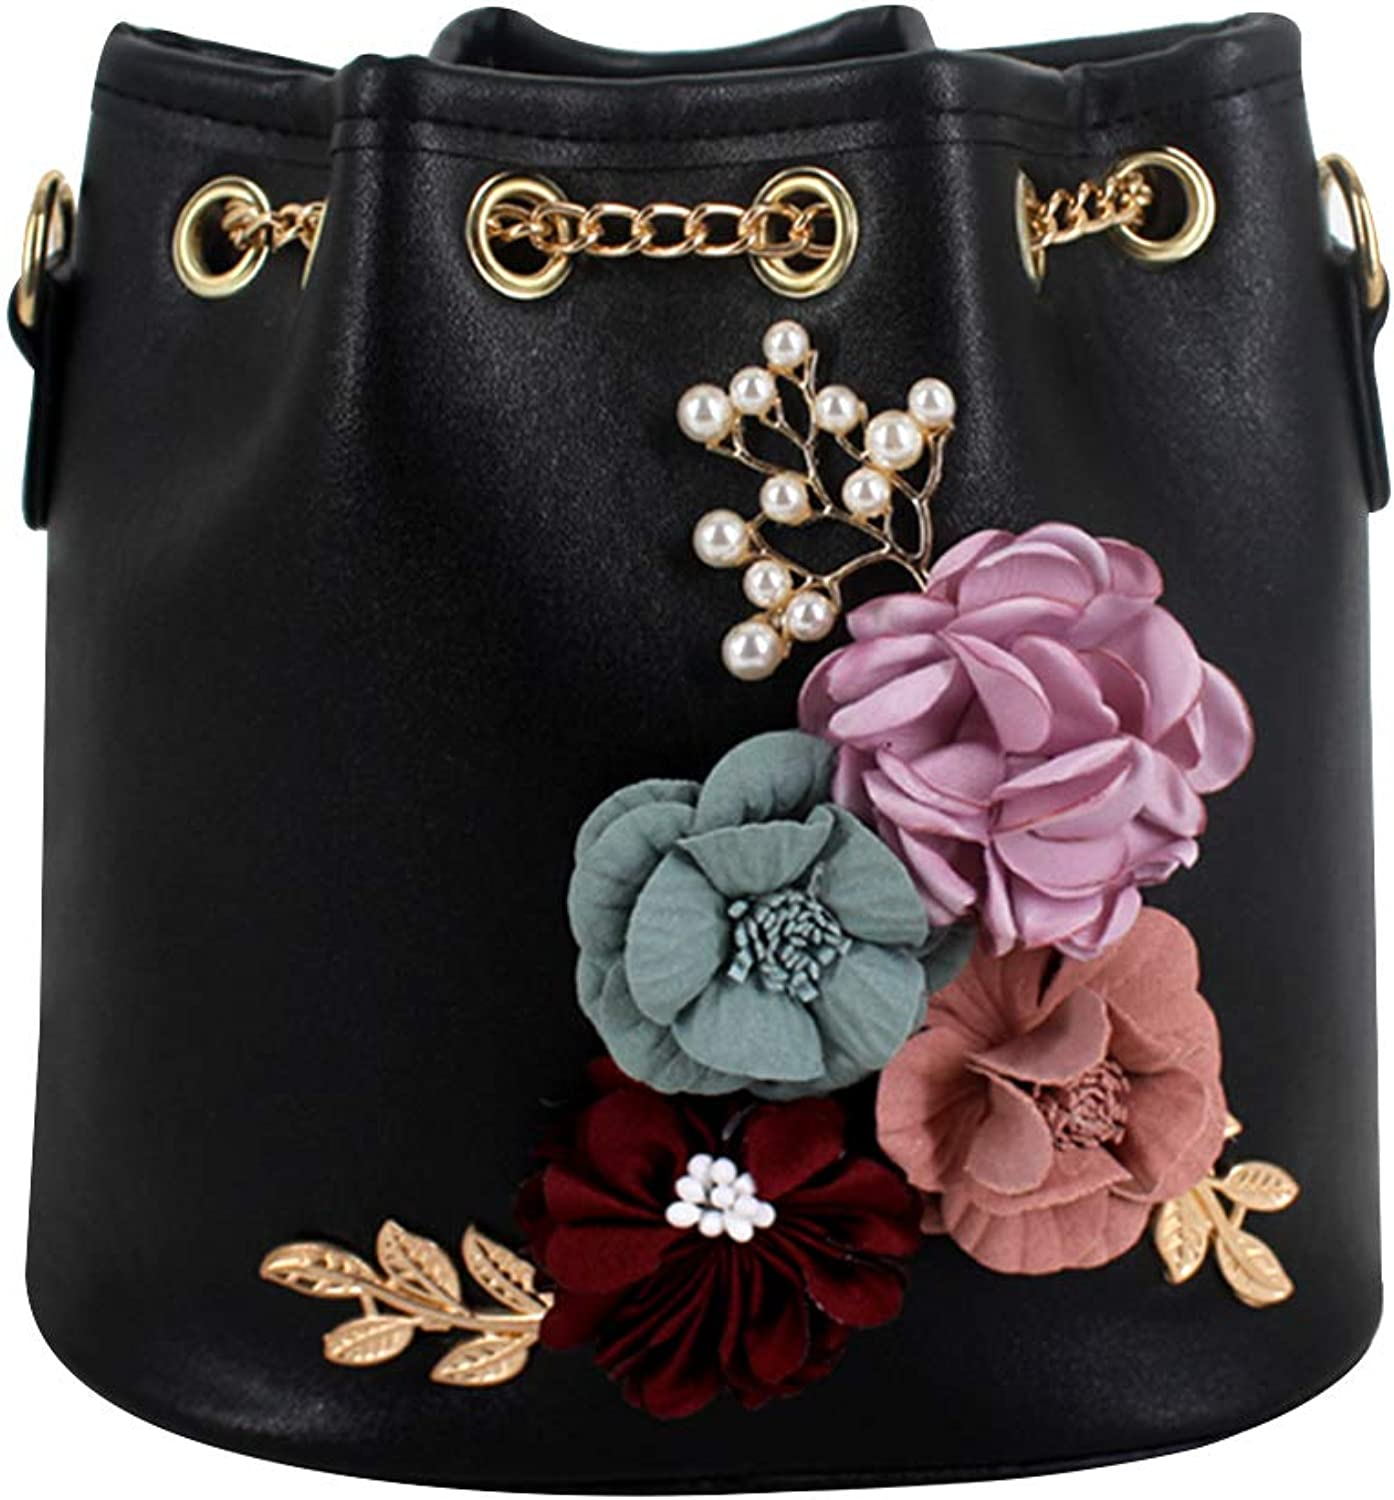 Goodbag Boutique Women Cactus Floral Bucket Bag Embroidery Chain Bag Drawstring Bag